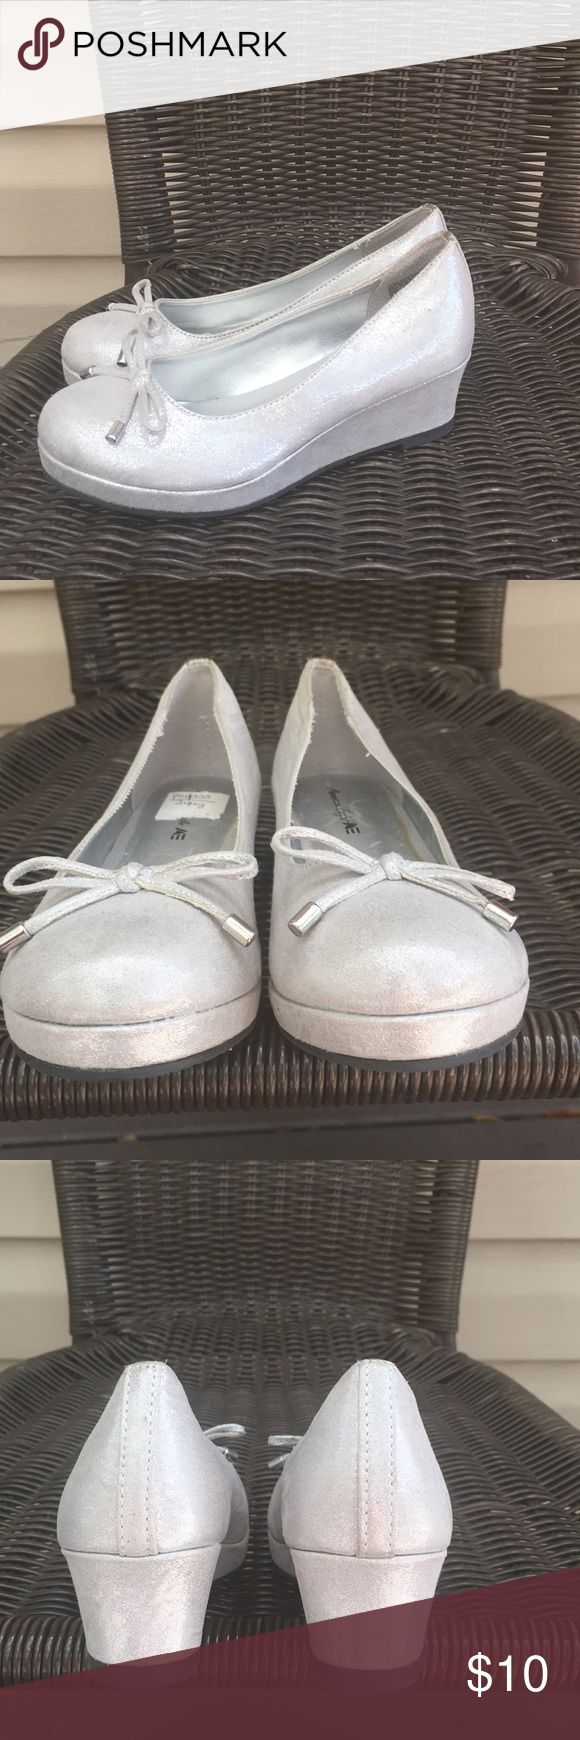 American Eagle girls silver slip on wedge shoes Lightly worn silver shoes with silver wedge heels , no scuffs, scratches or stains bow at toes. EUC American Eagle Shoes Dress Shoes